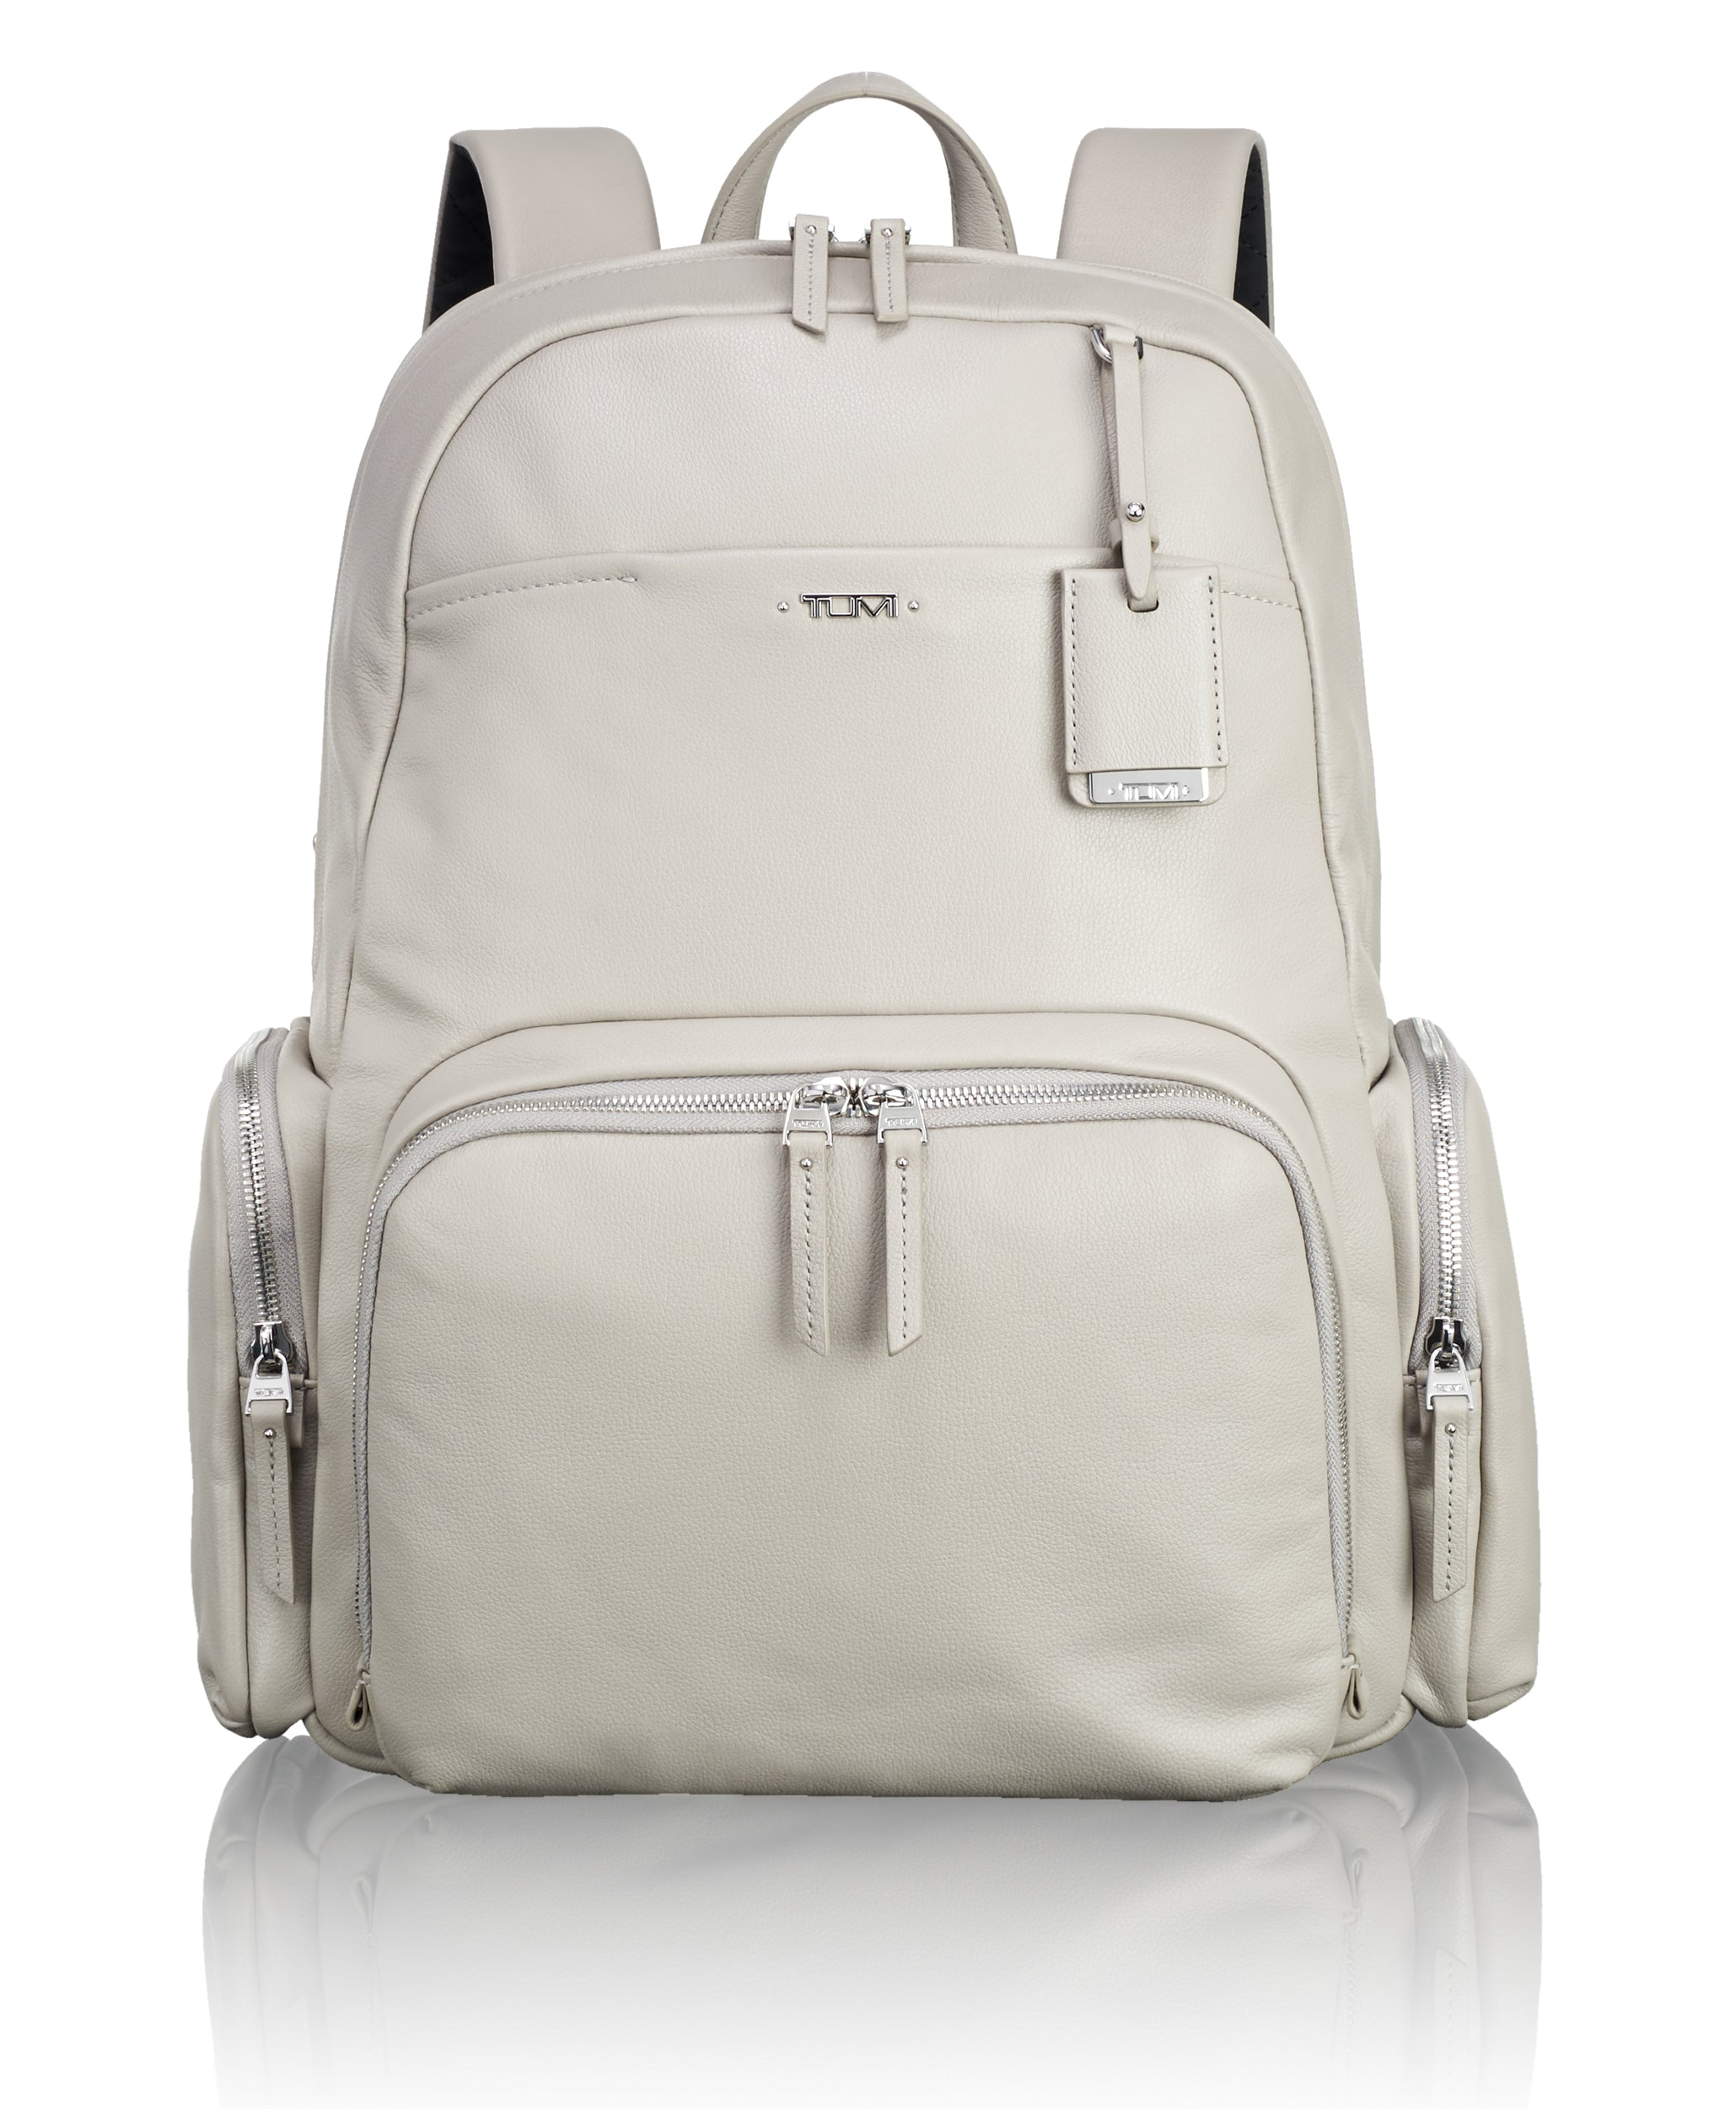 Tumi Voyageur Calais Leather Backpack - Grey | MEGO